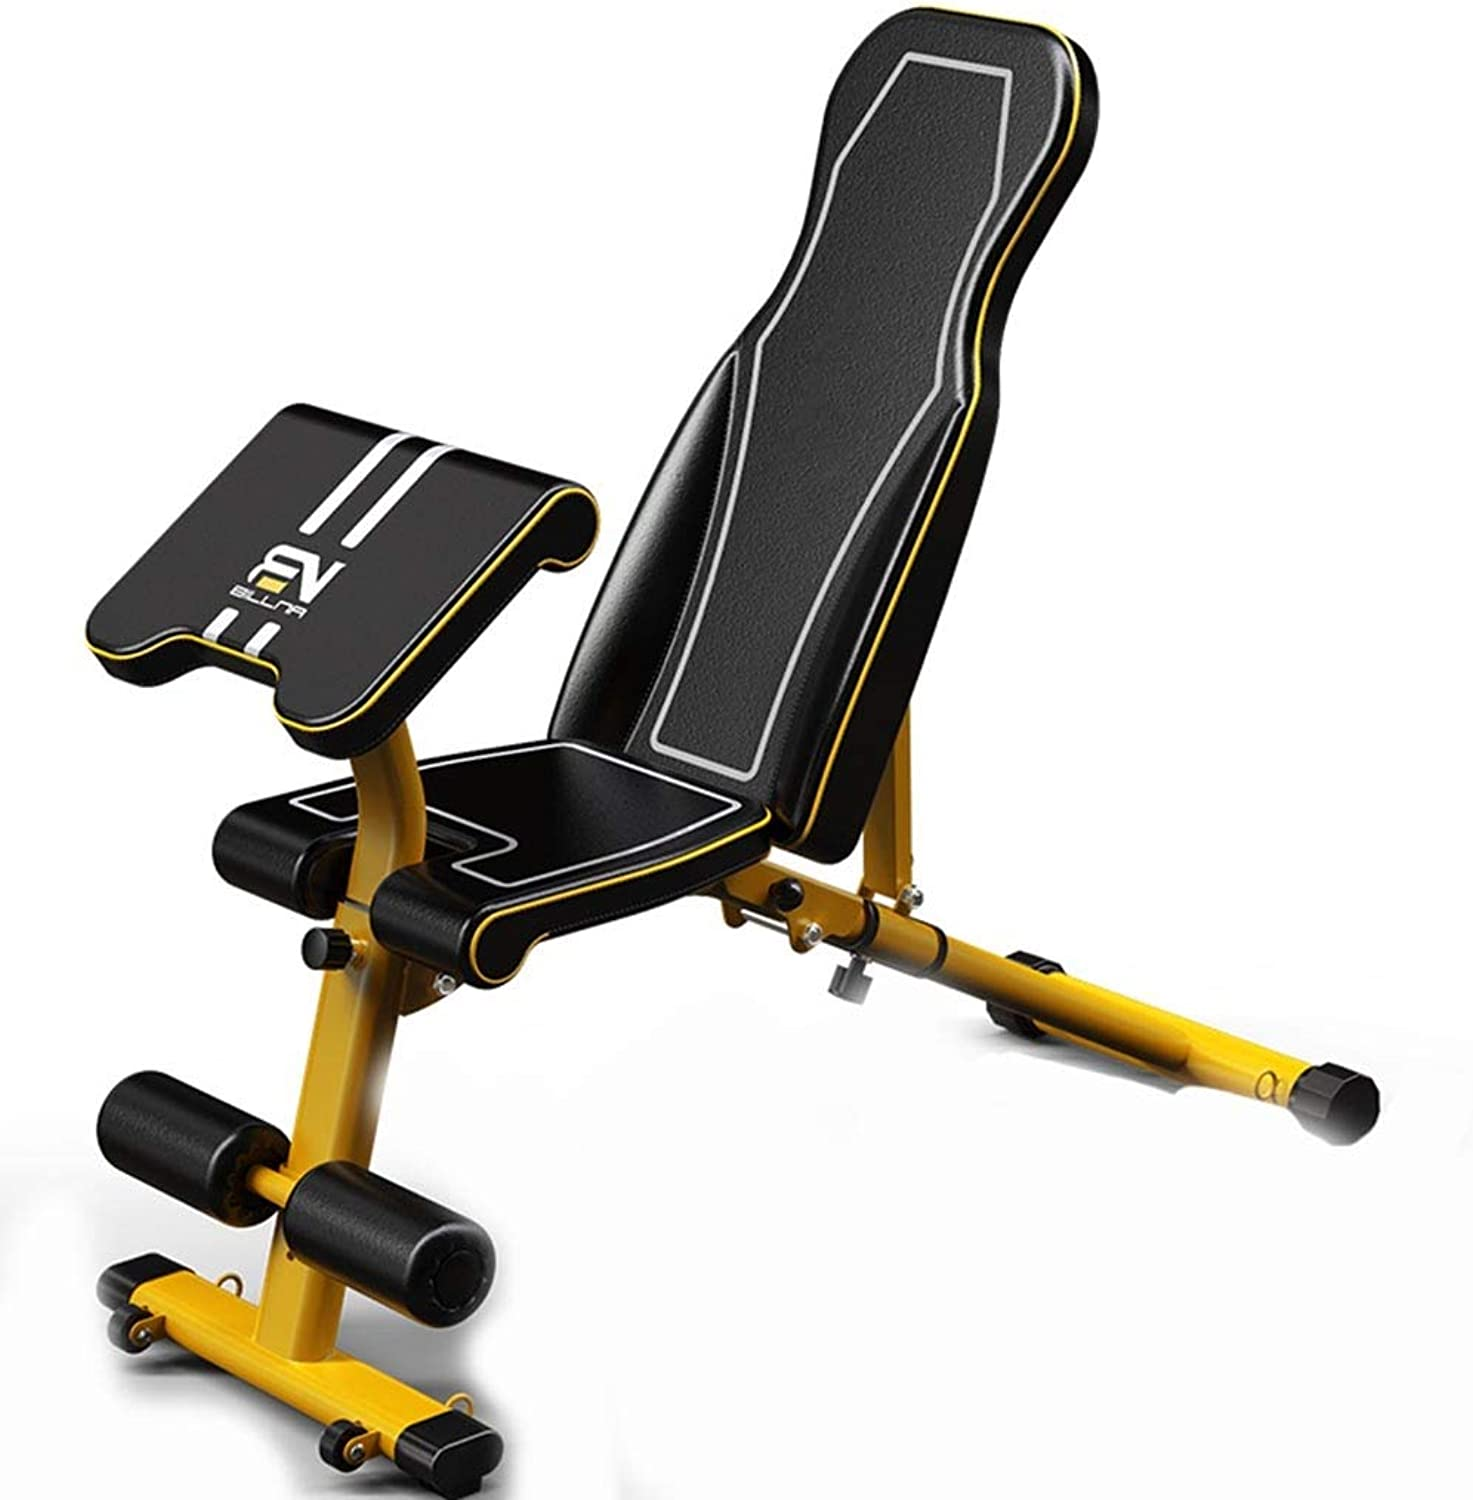 Strength Training Equipment Abdominal Training Stool Situp Dumbbell Bench Sports Chair Home Leisure Chair Fitness Bench Press Outdoor Sports Equipment (color   Yellow, Size   125cm39cm)